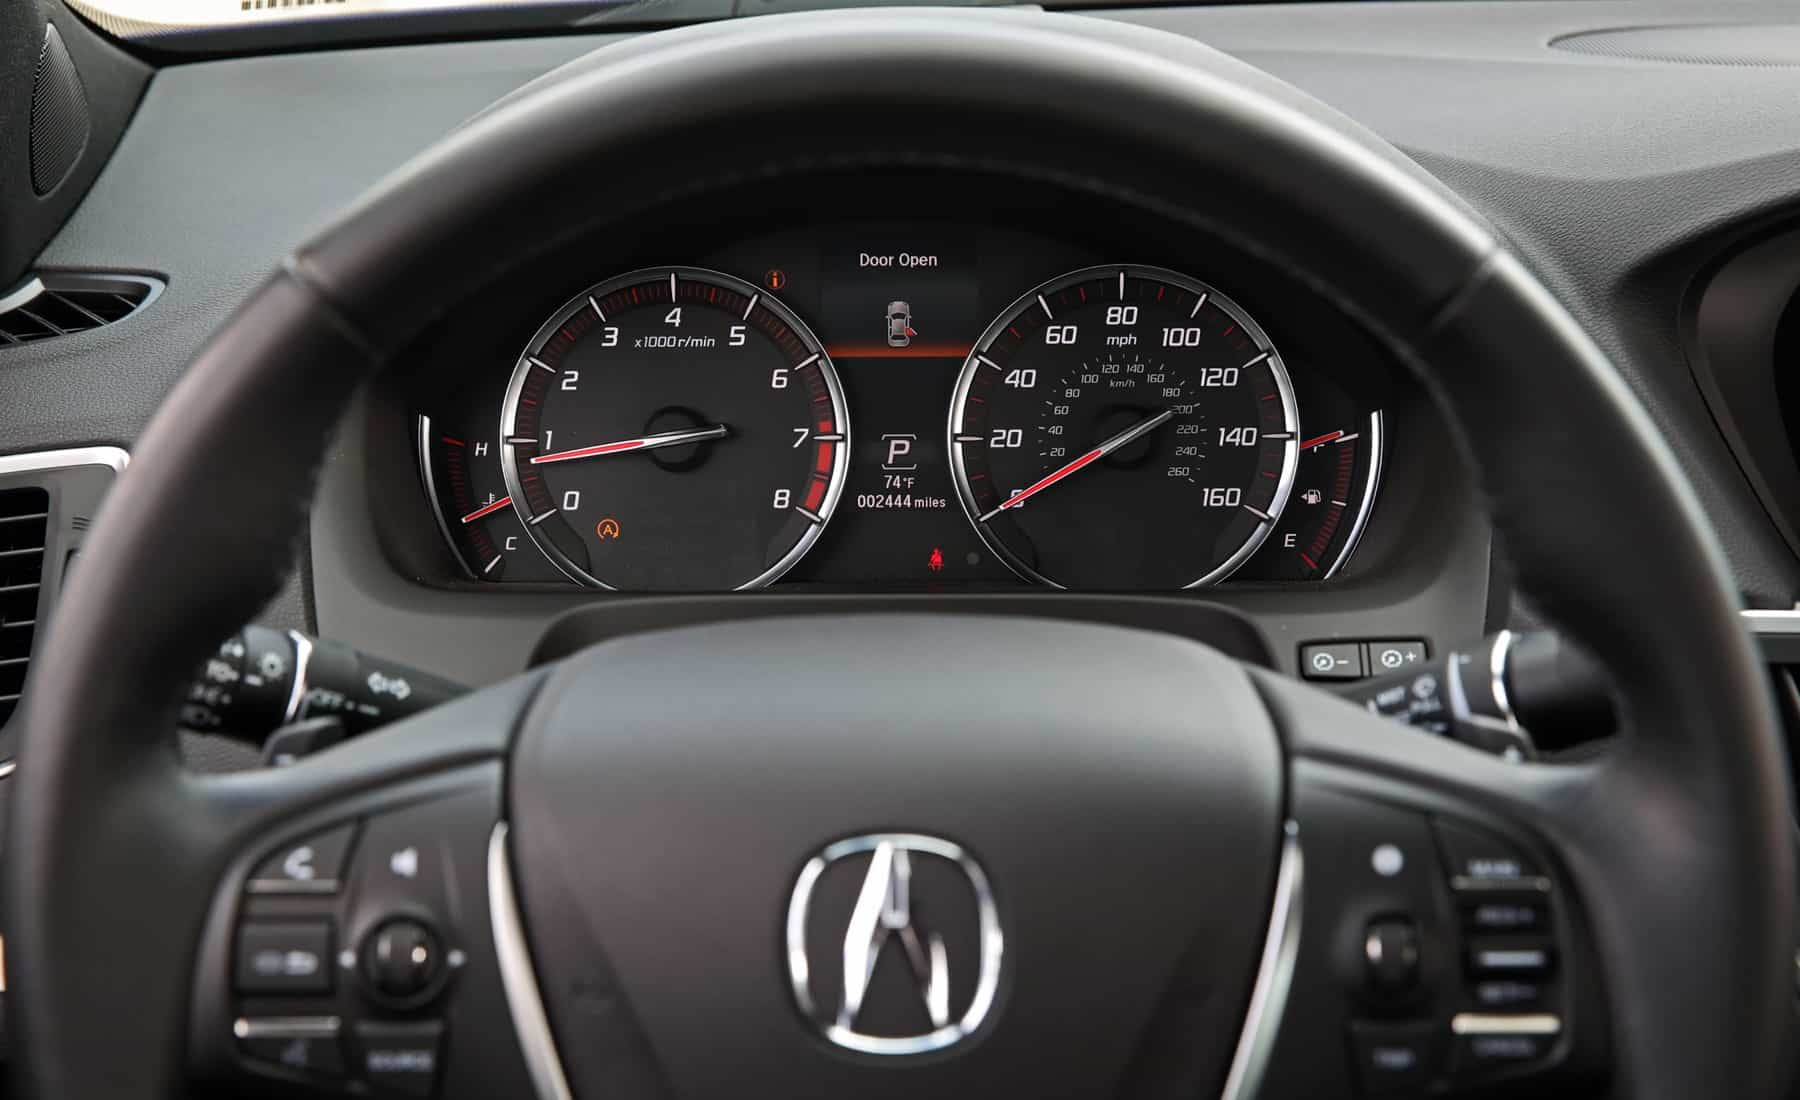 2018 Acura TLX Interior View Speedometer (View 14 of 46)